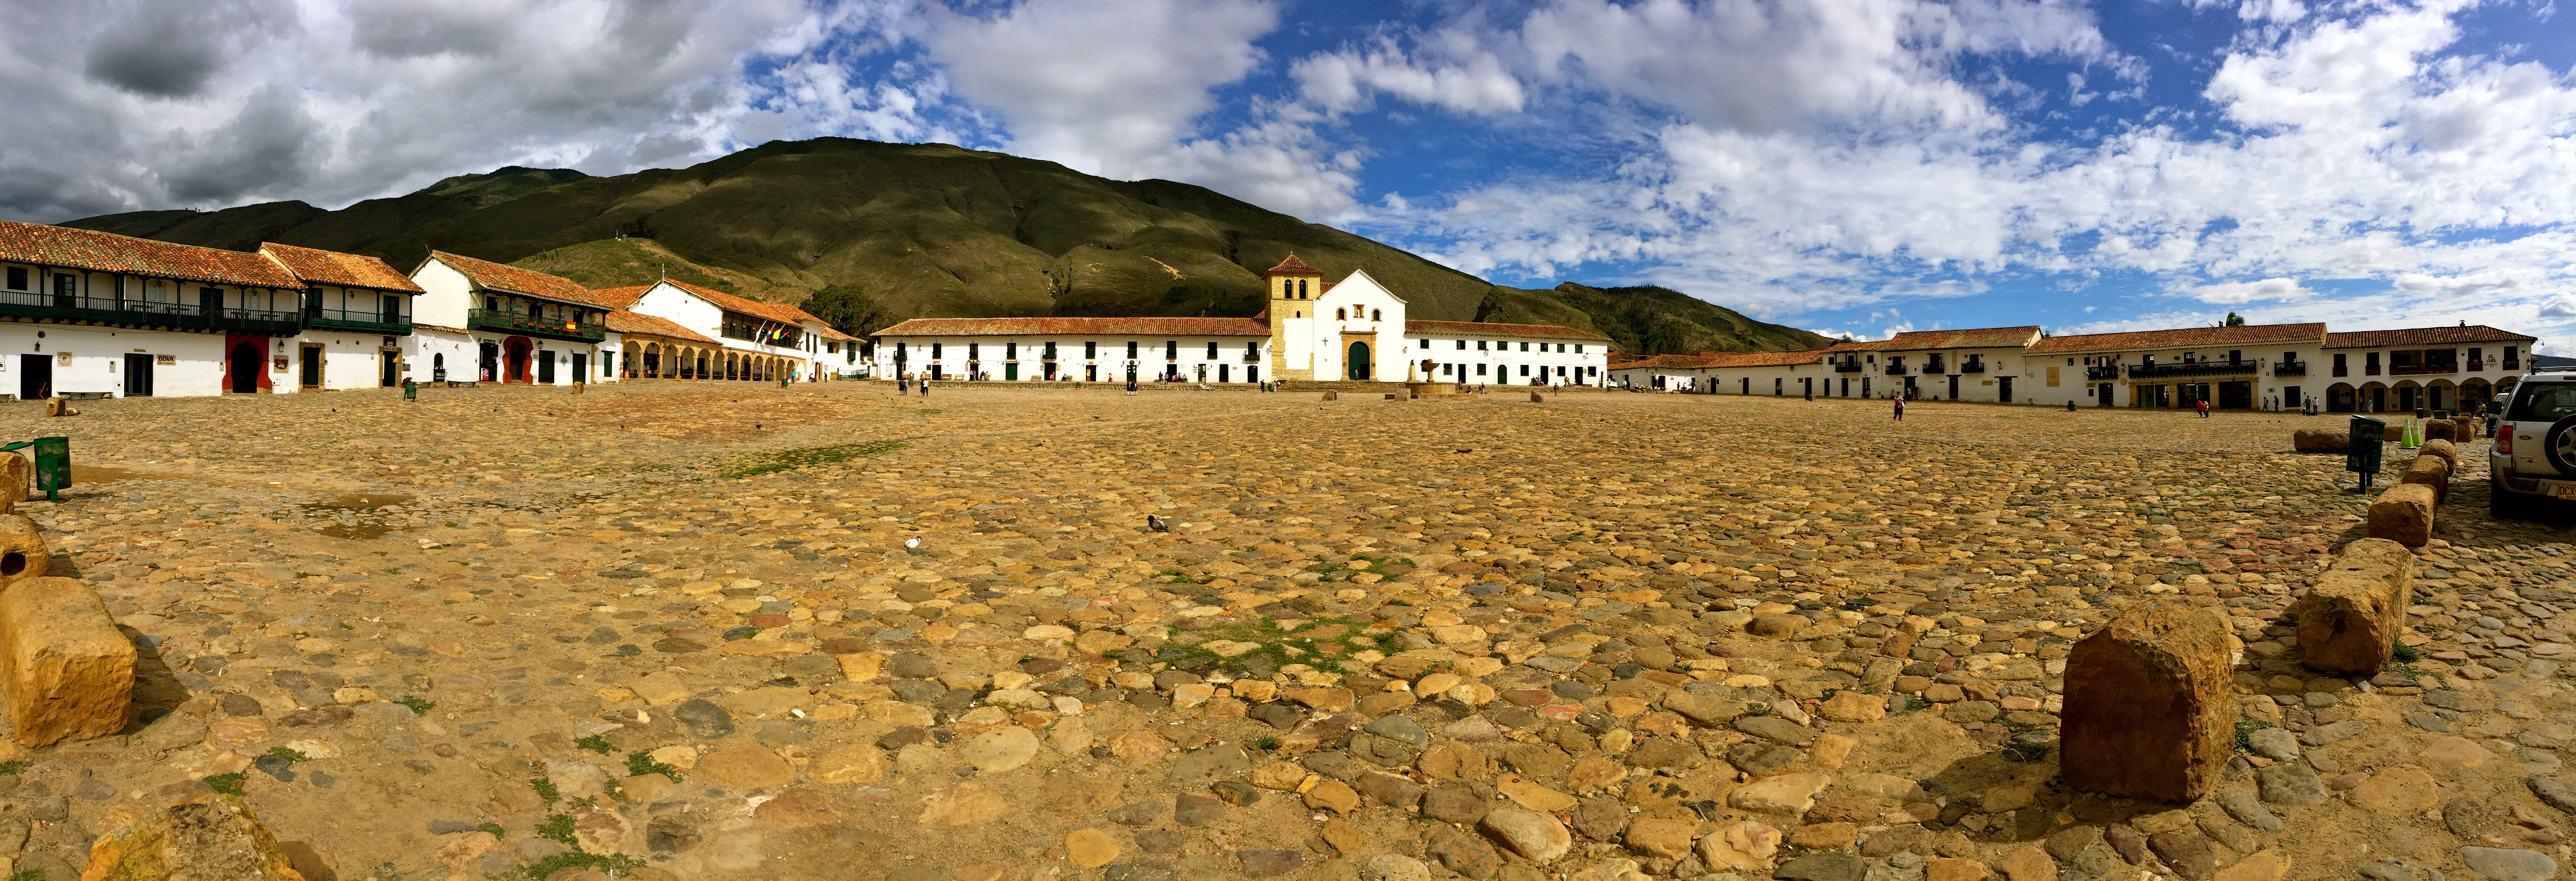 Travel to Colombia   Travelling To Villa de Leyva and Salt Cathedral